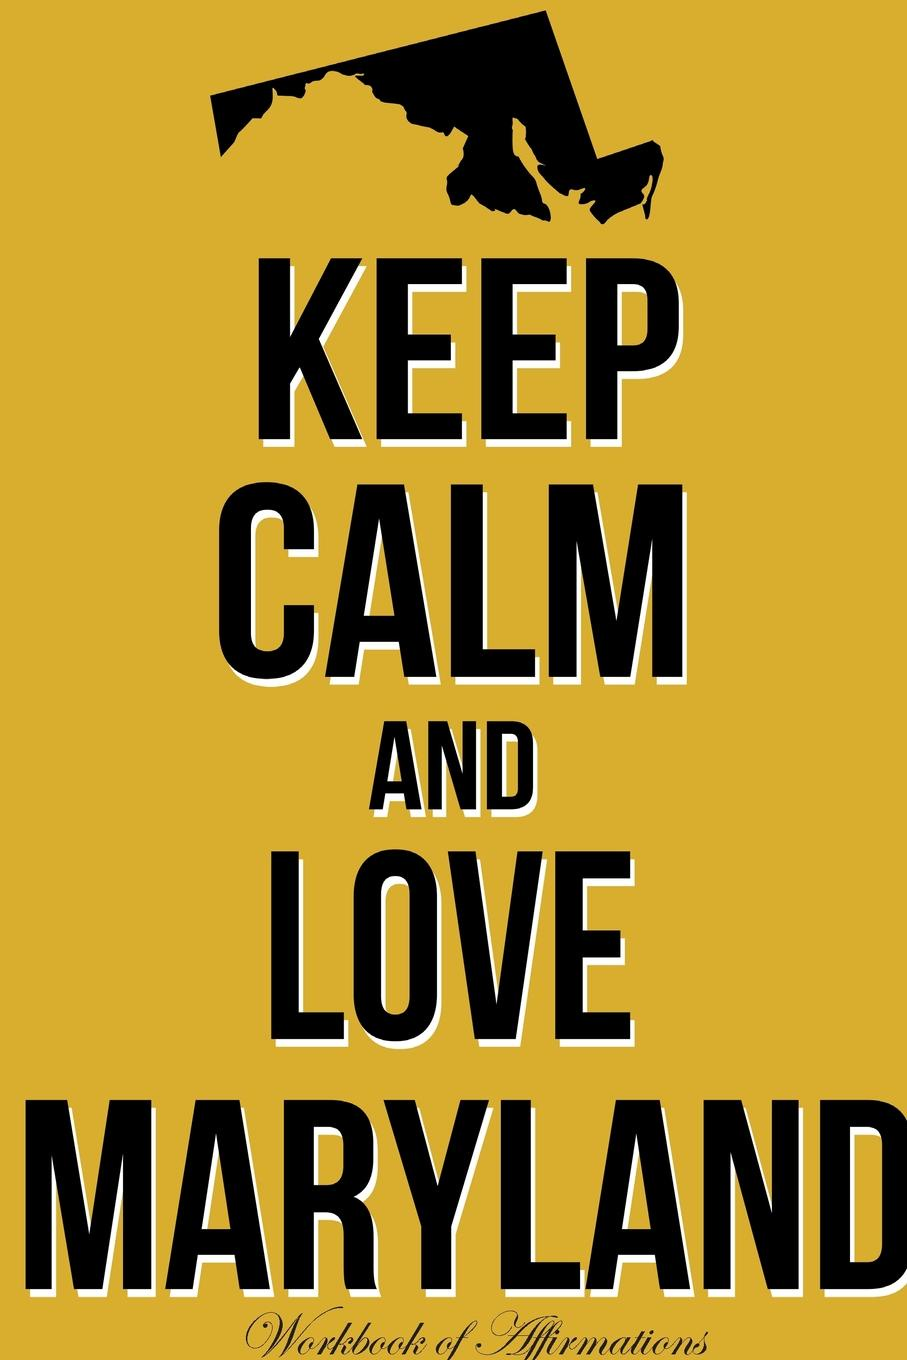 Alan Haynes Keep Calm Love Maryland Workbook of Affirmations Keep Calm Love Maryland Workbook of Affirmations. Bullet Journal, Food Diary, Recipe Notebook, Planner, To Do List, Scrapbook, Academic Notepad portable cute weekly planner sweet notebook fresh student schedule journal diary writing book school supplies